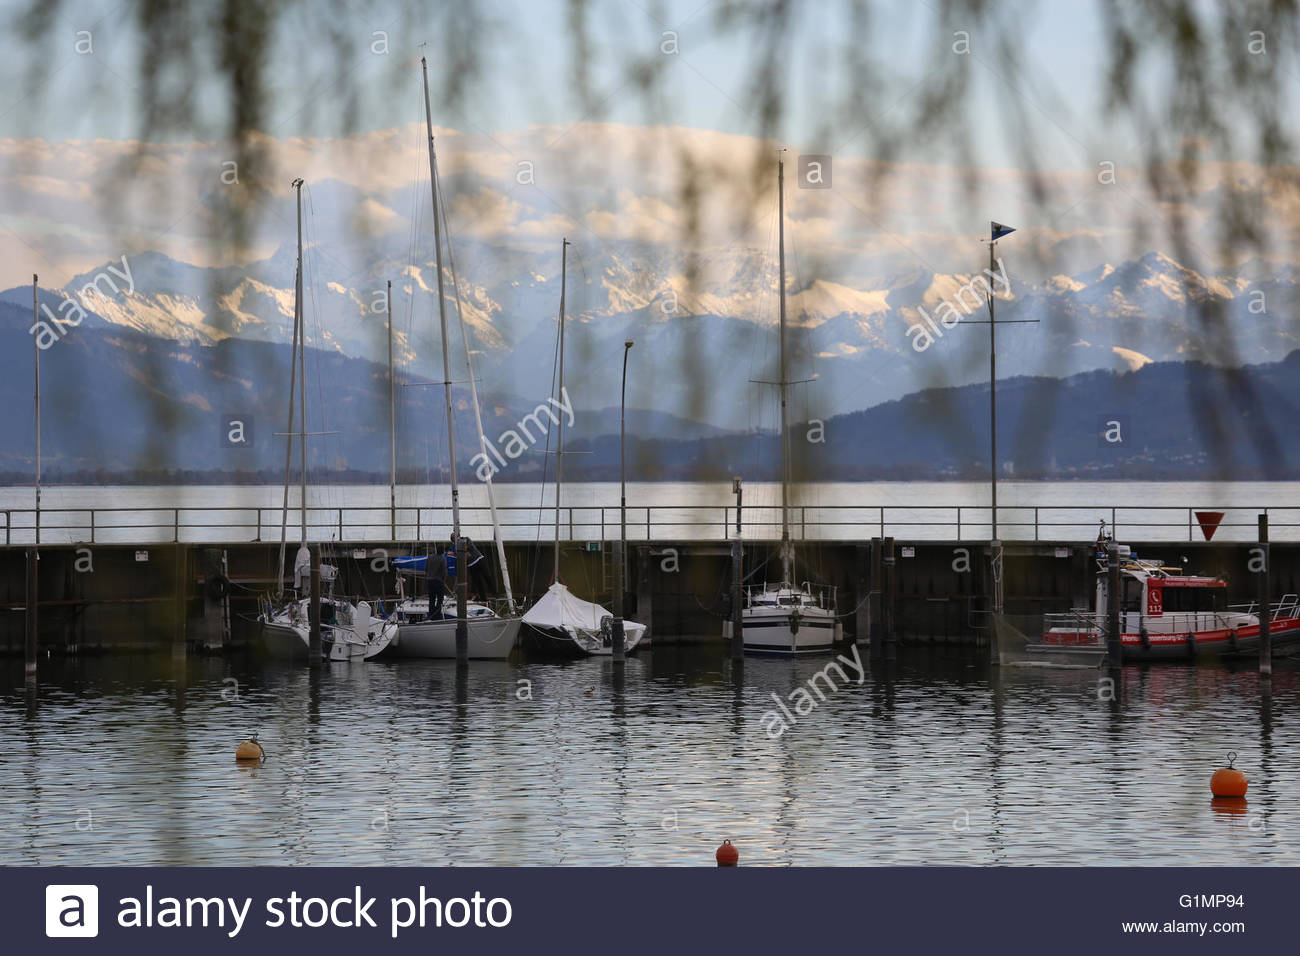 A shot of the Alps near Lindau on Lake Constance. - Stock Image